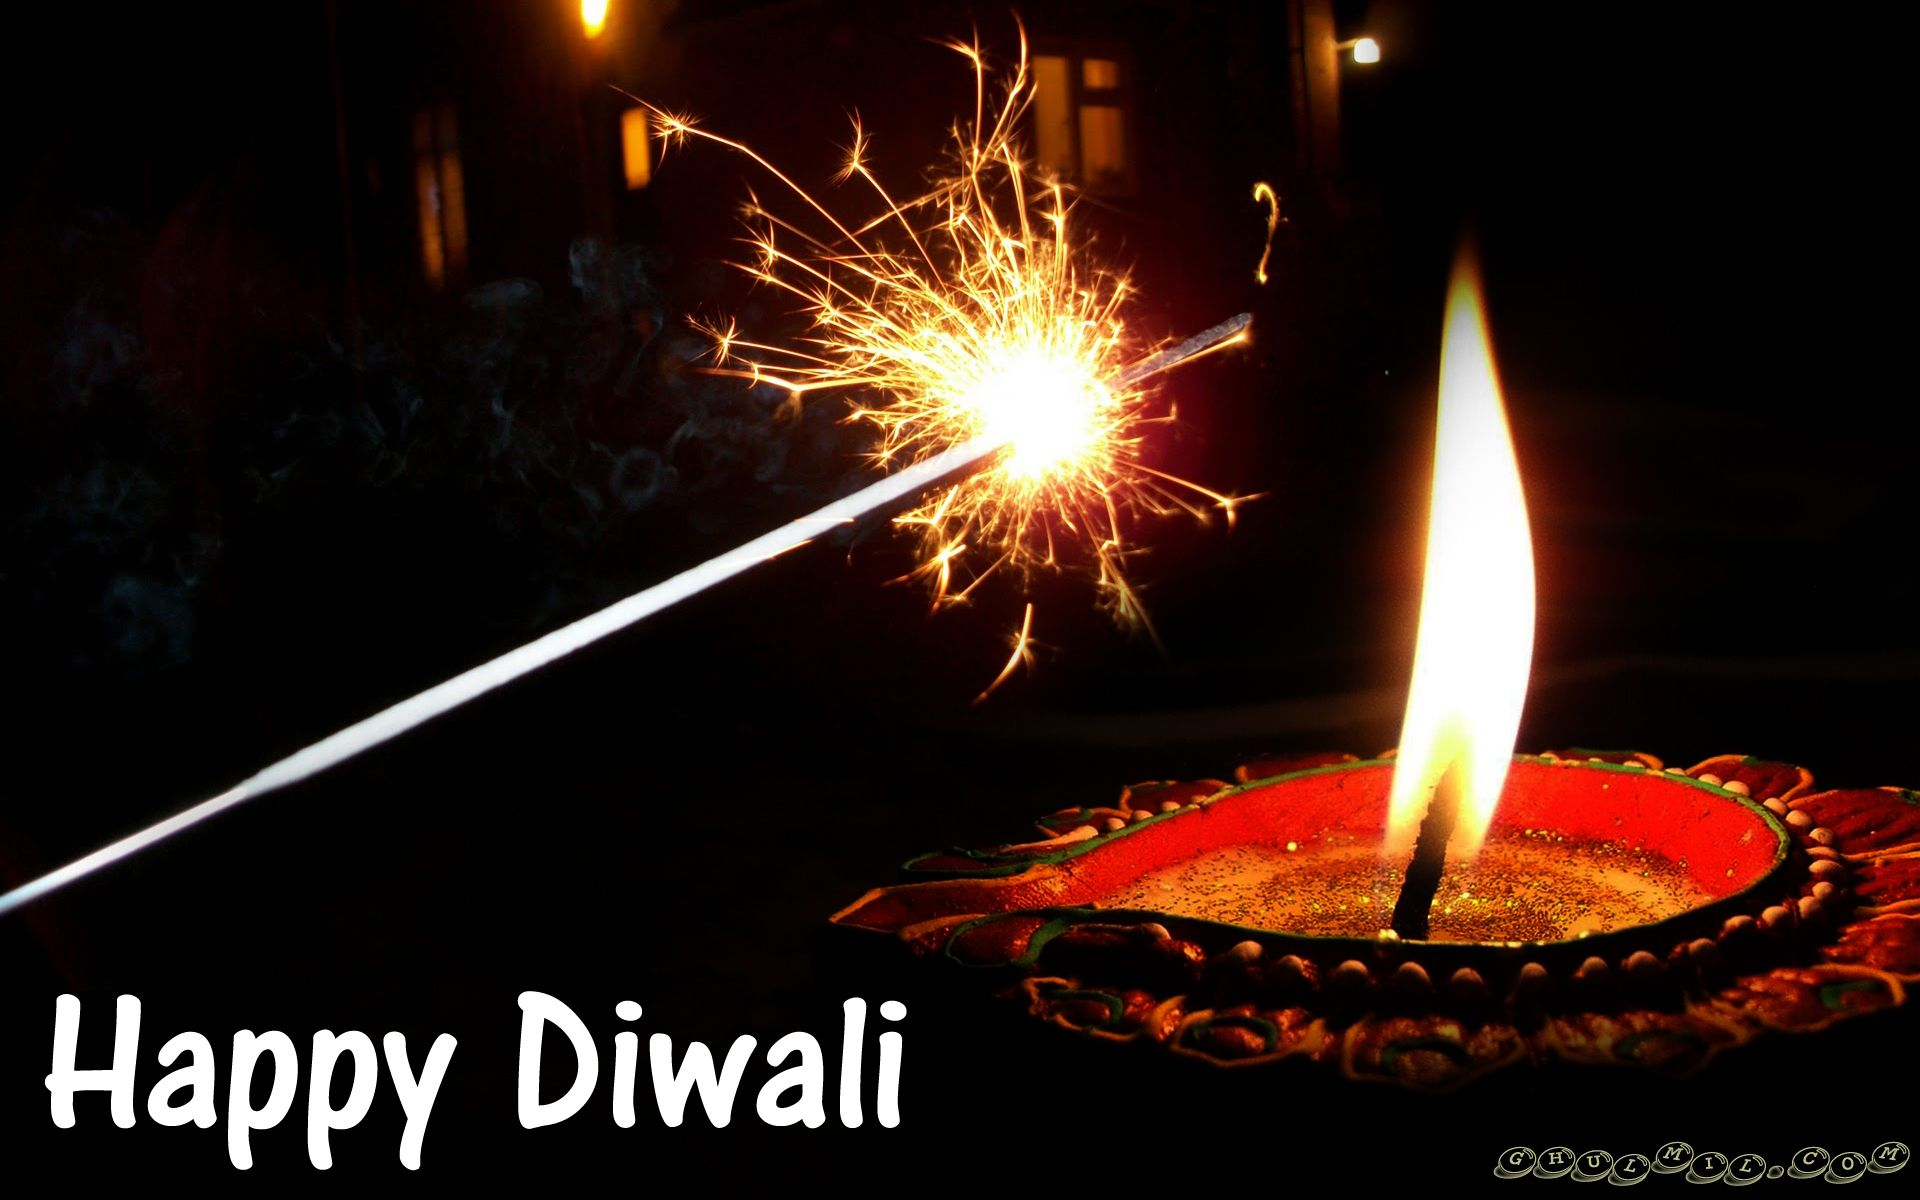 Wallpaper download diwali - Free Diwali Wallpapers Download